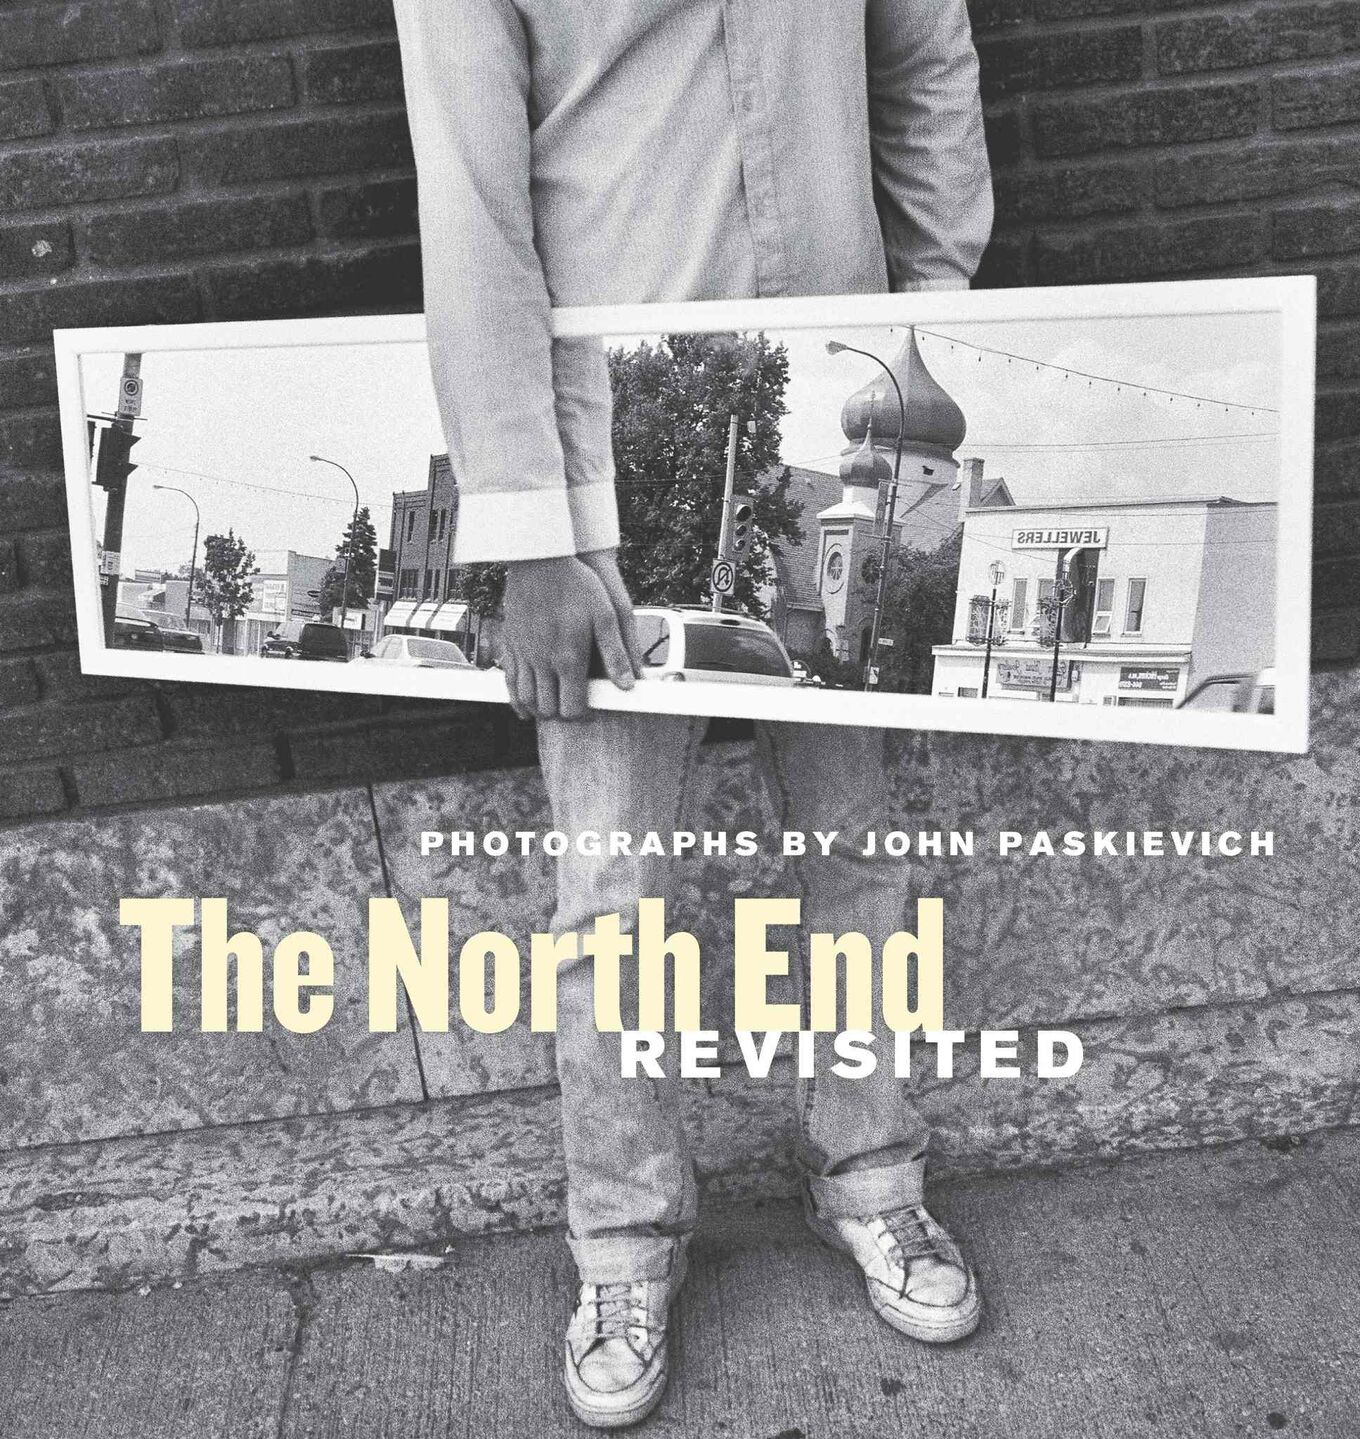 The cover of <I>The North End Revisited: Photographs by John Paskievich</I>